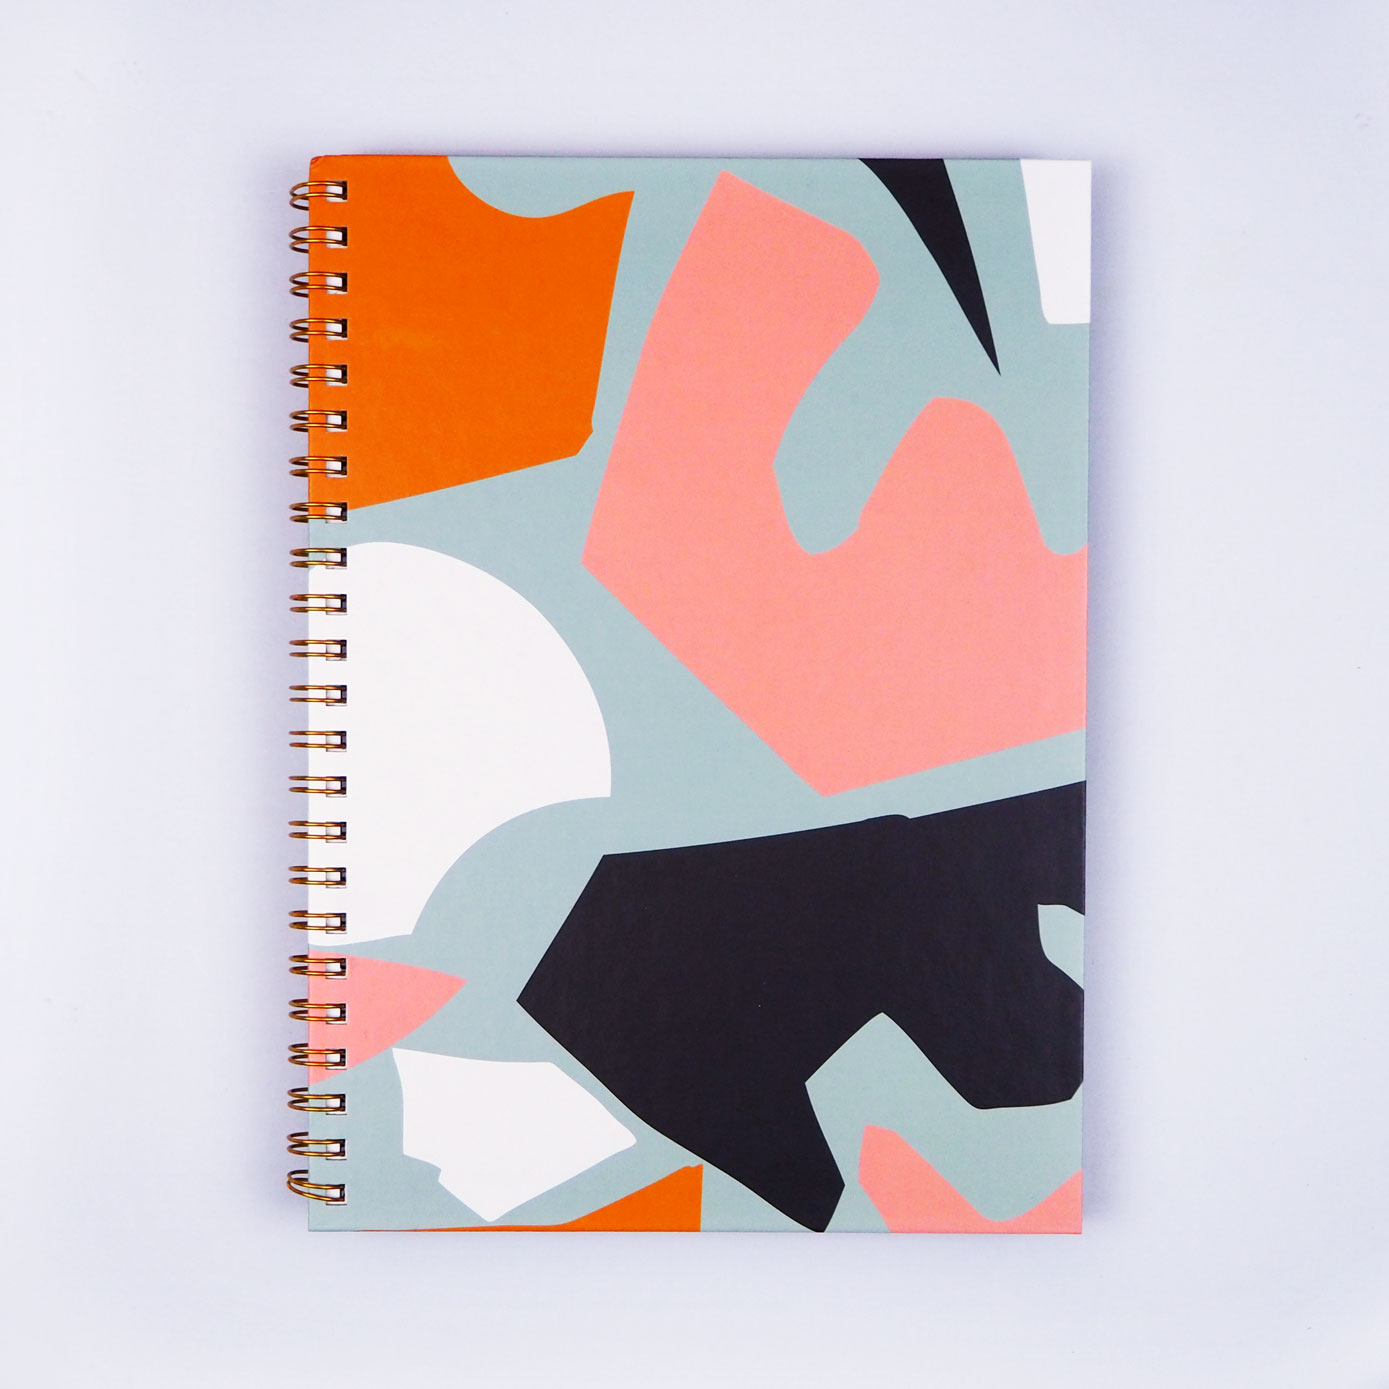 Spiral Sketch Book - Cut Out Shapes